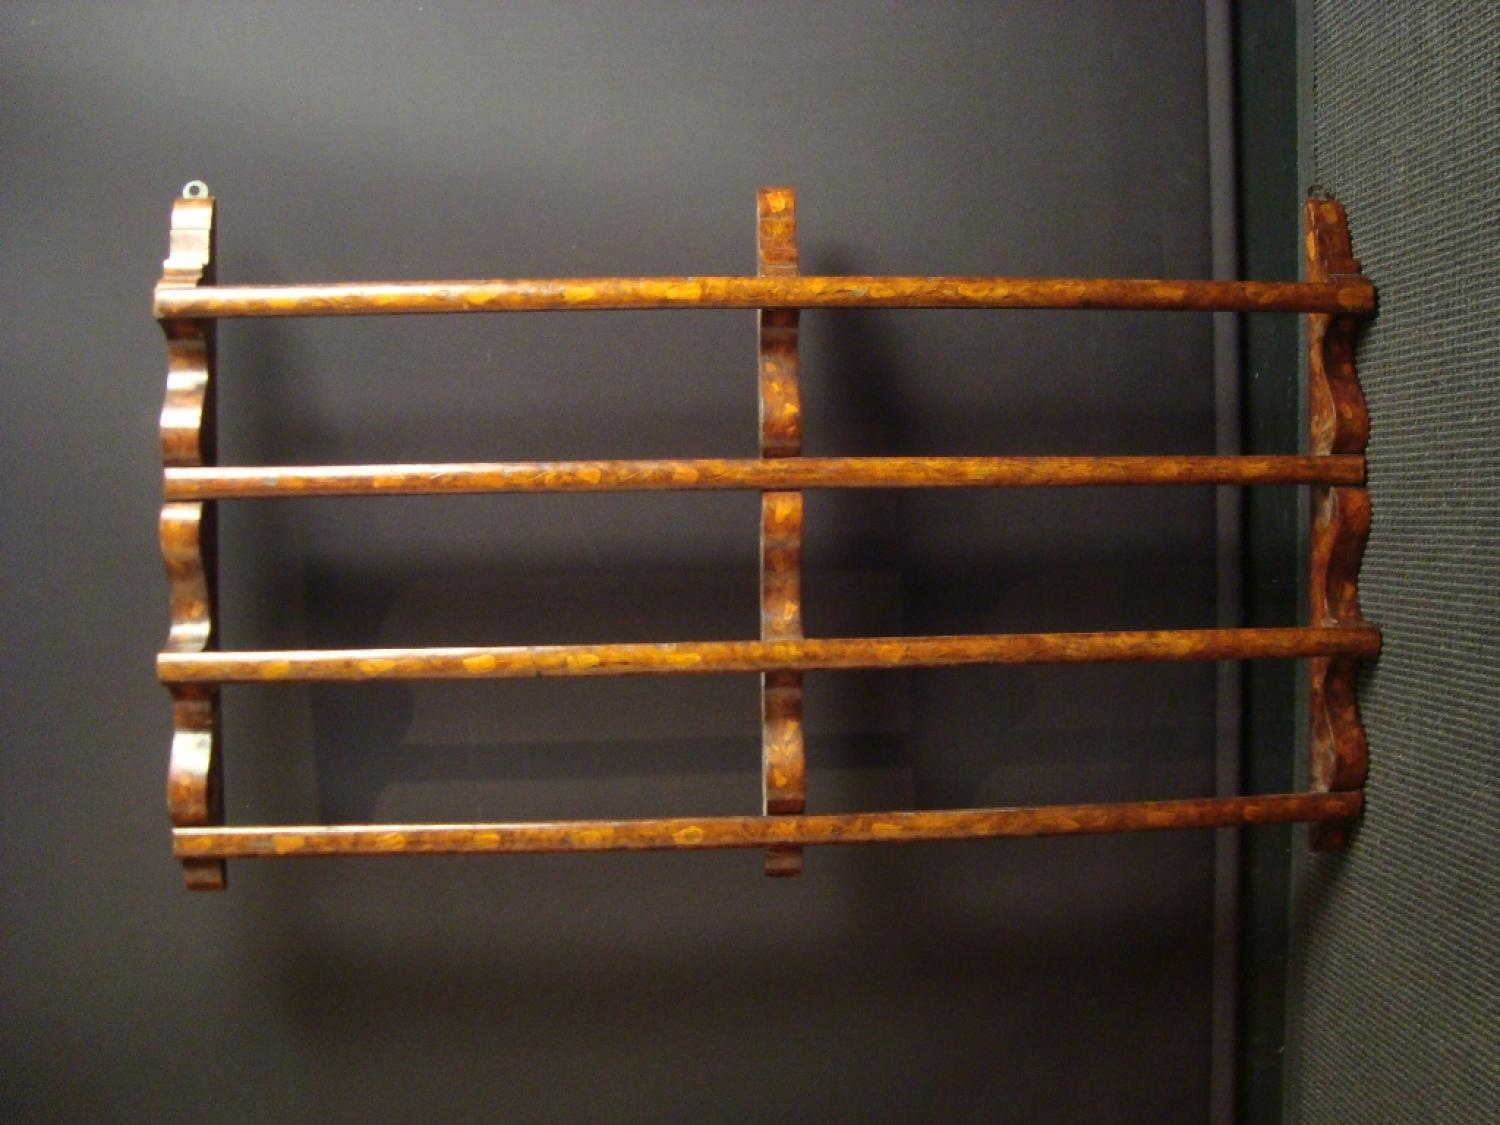 A 19th century Dutch marquetry plate rack